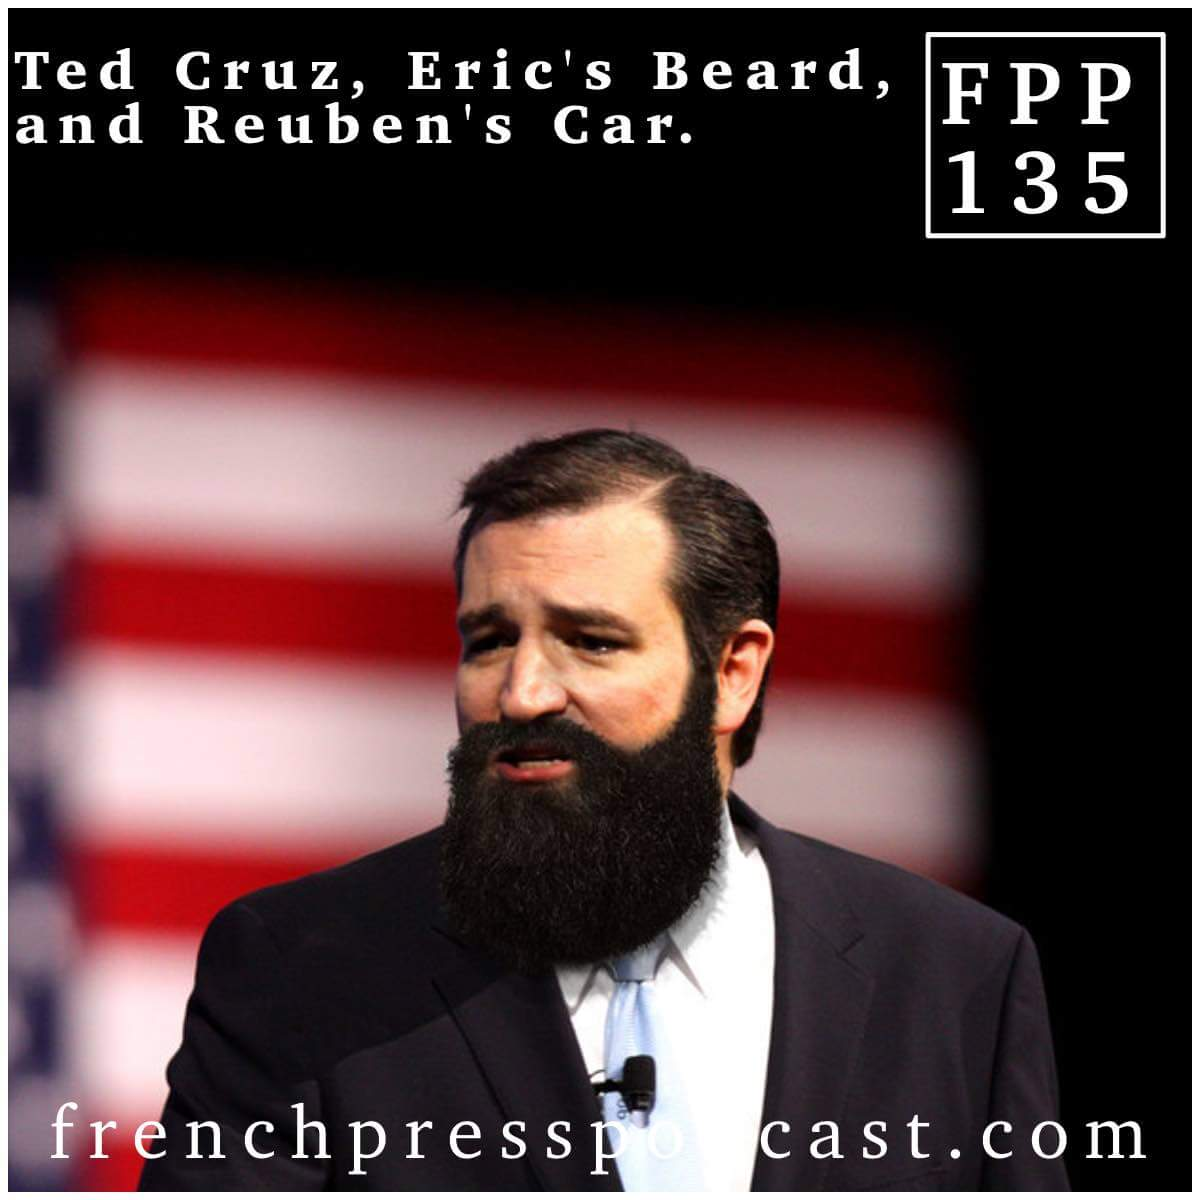 Ted Cruz, Eric's Beard, and Reuben's Car